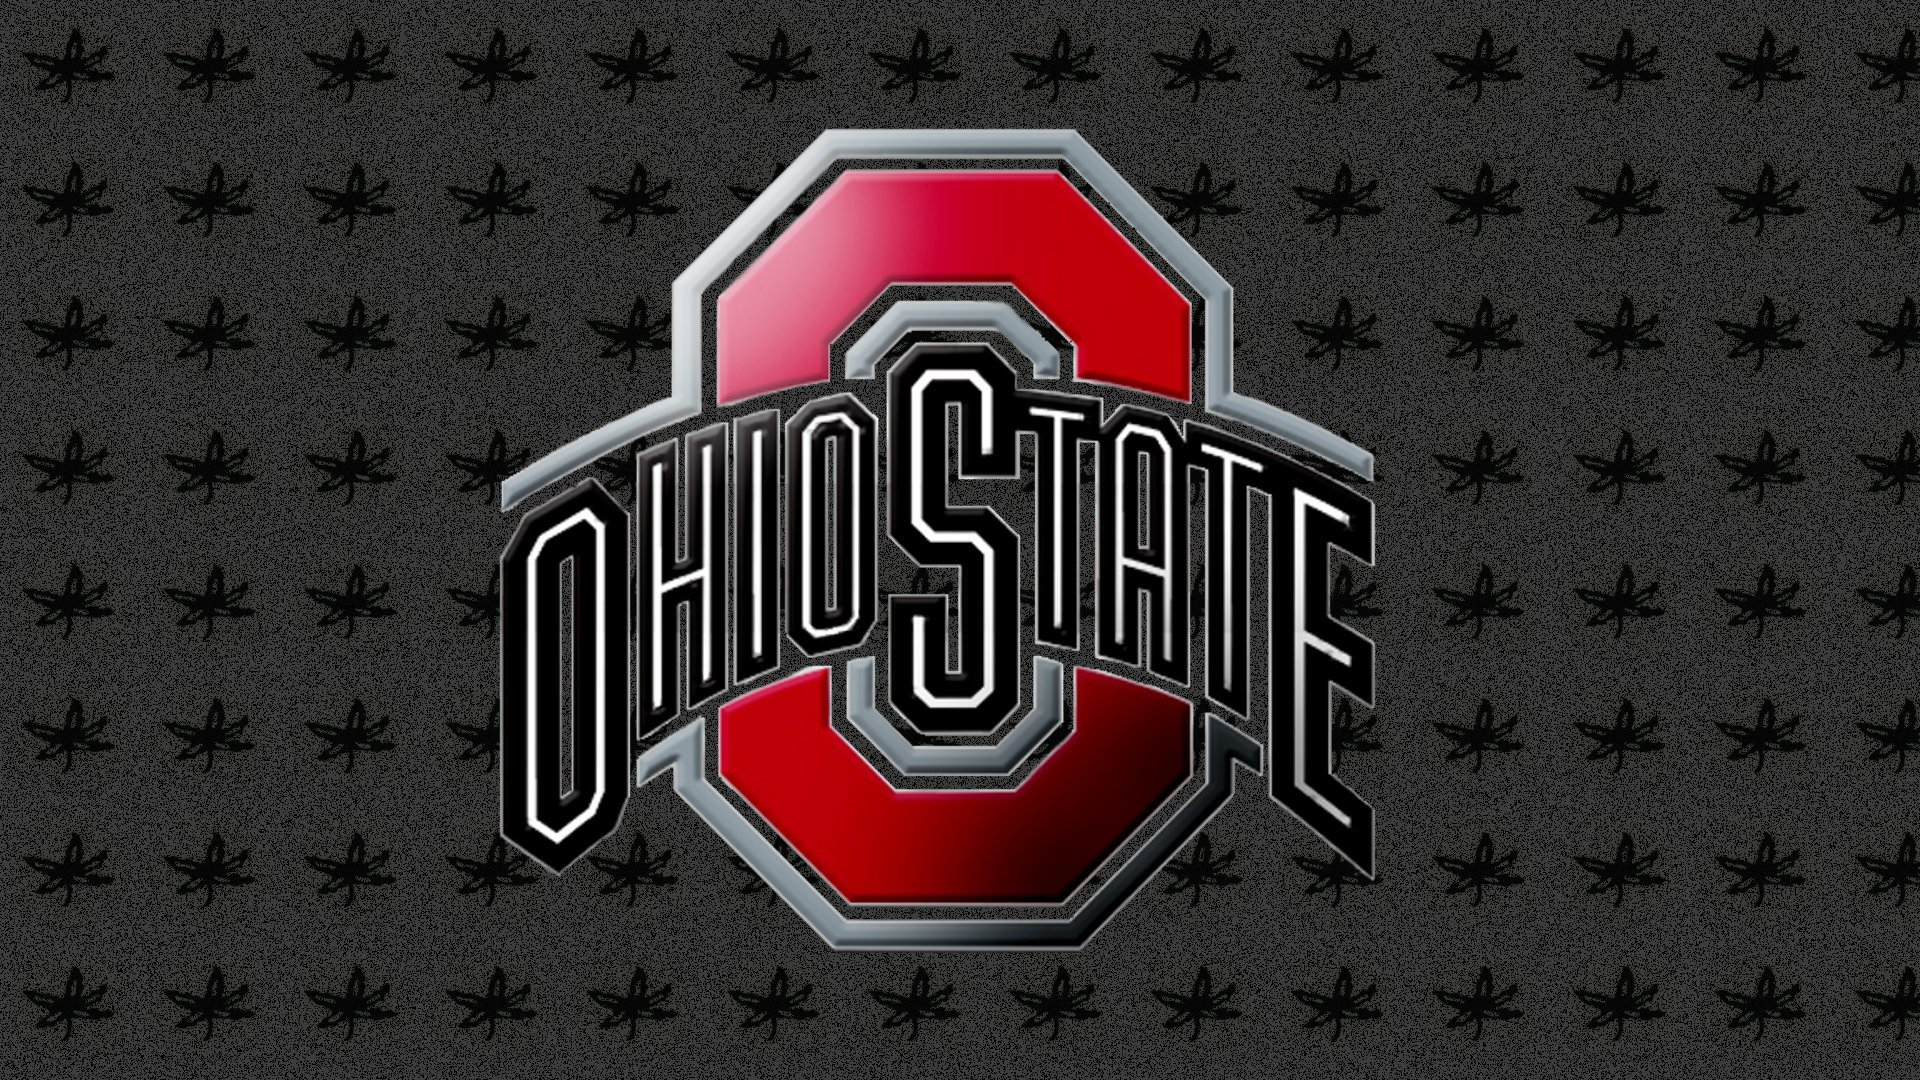 Ohio State Football images OSU Desktop Wallpaper 55 HD wallpaper and .